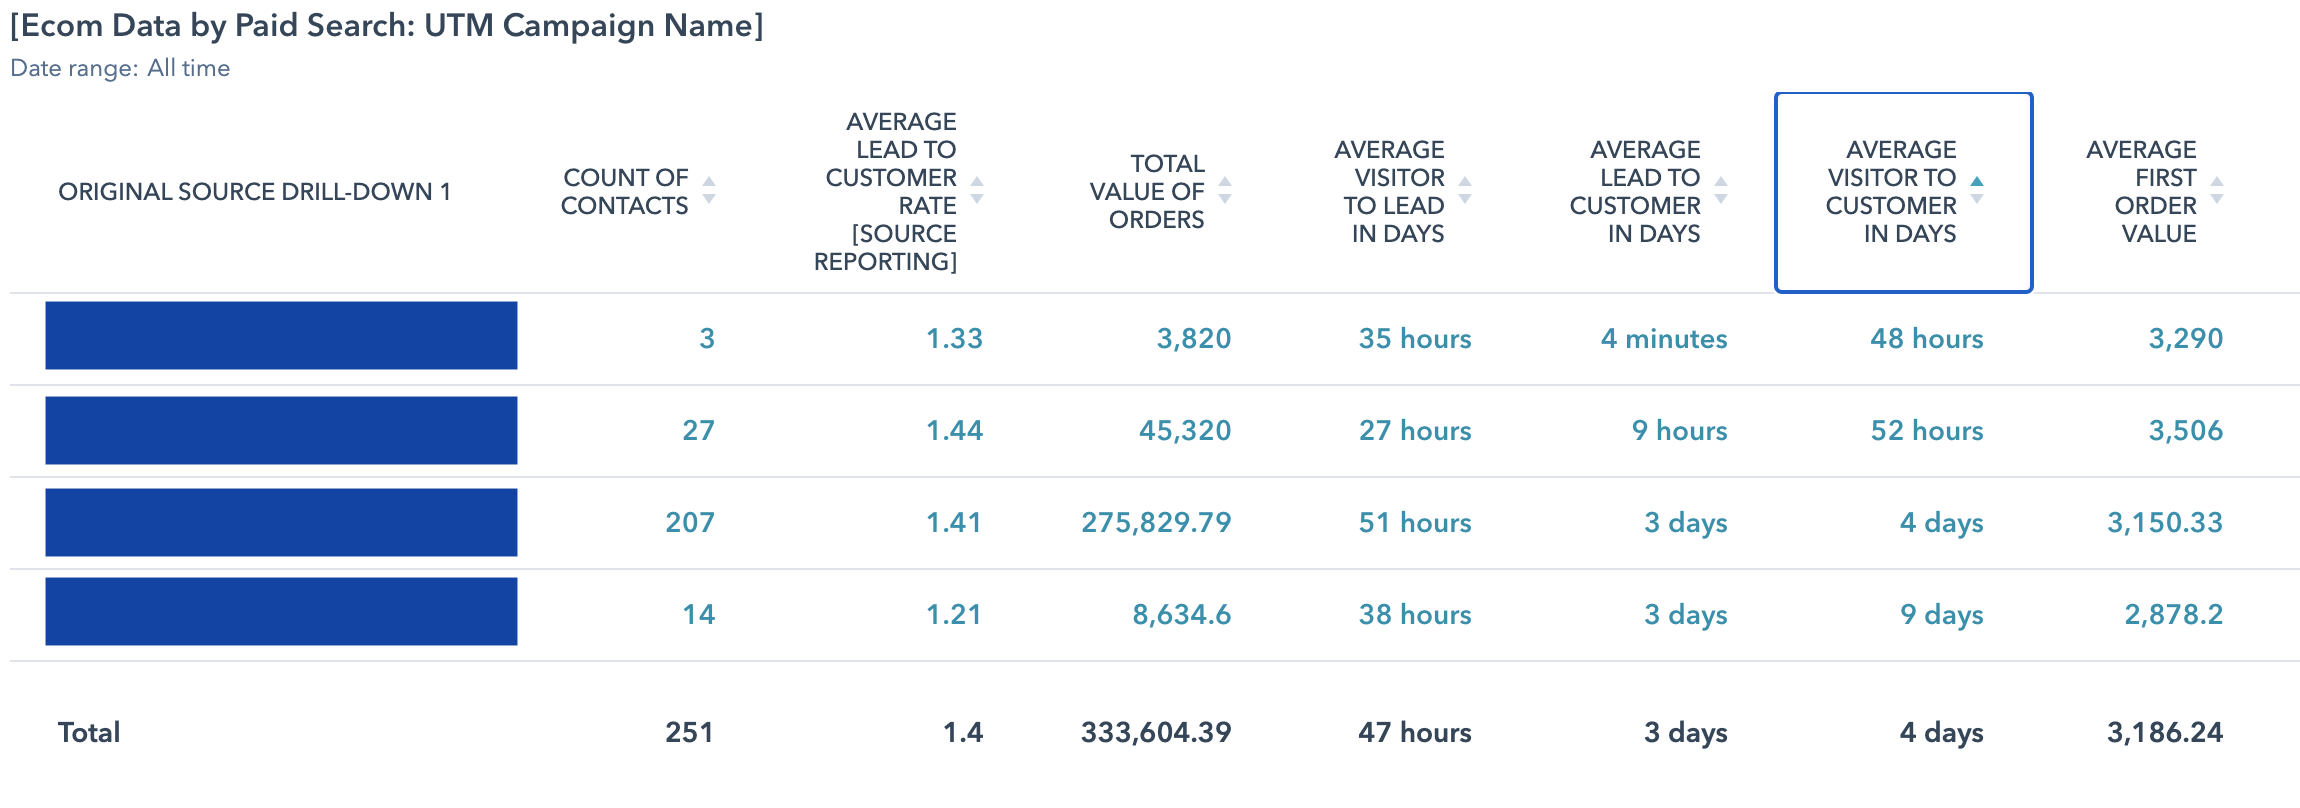 [Ecom Data by Paid Search - UTM Campaign Name]